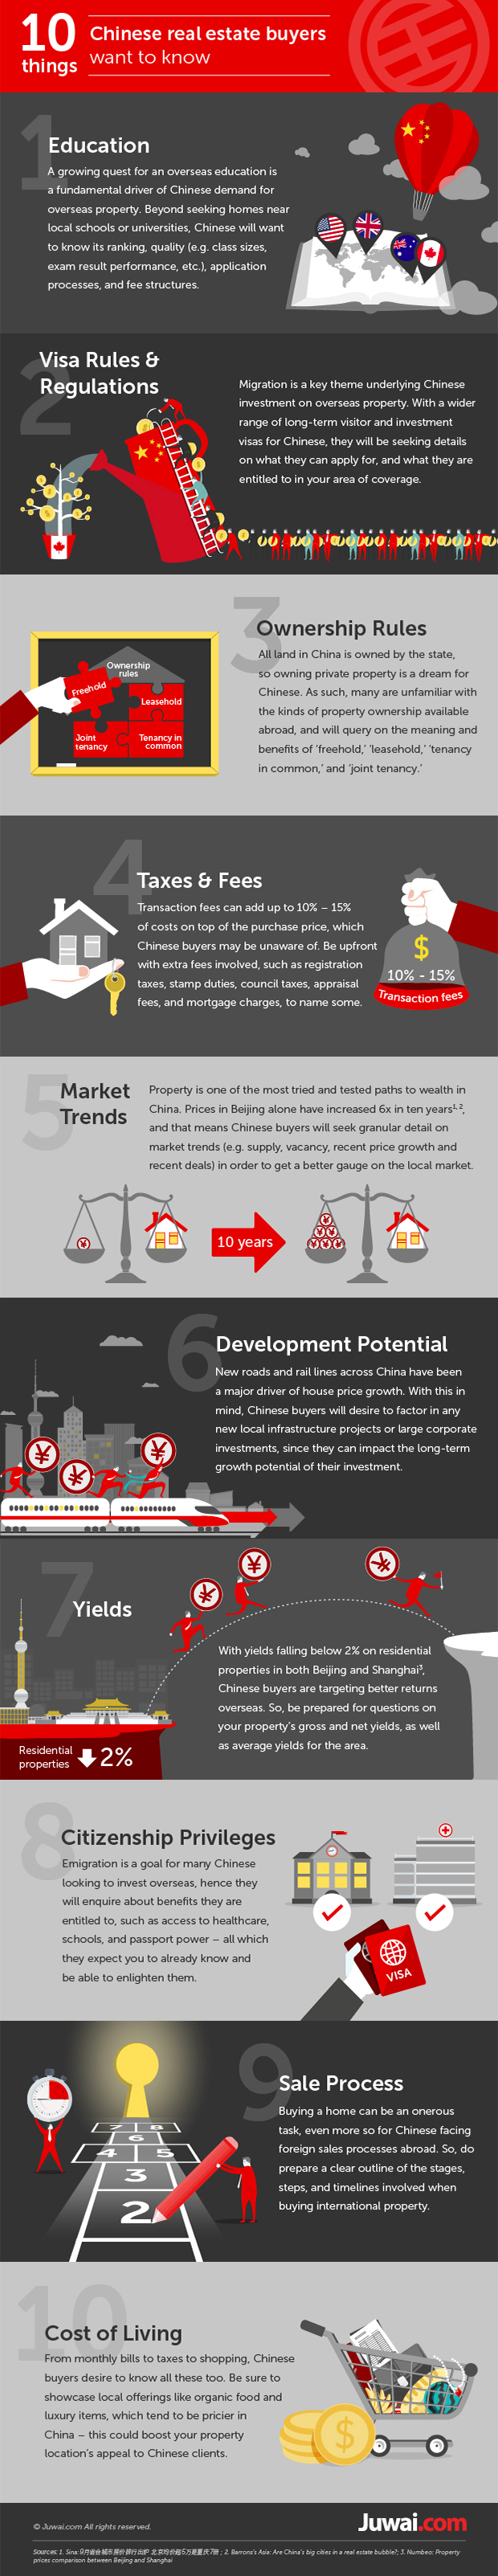 Juwai Infographic 10 things Chinese buyers want to know